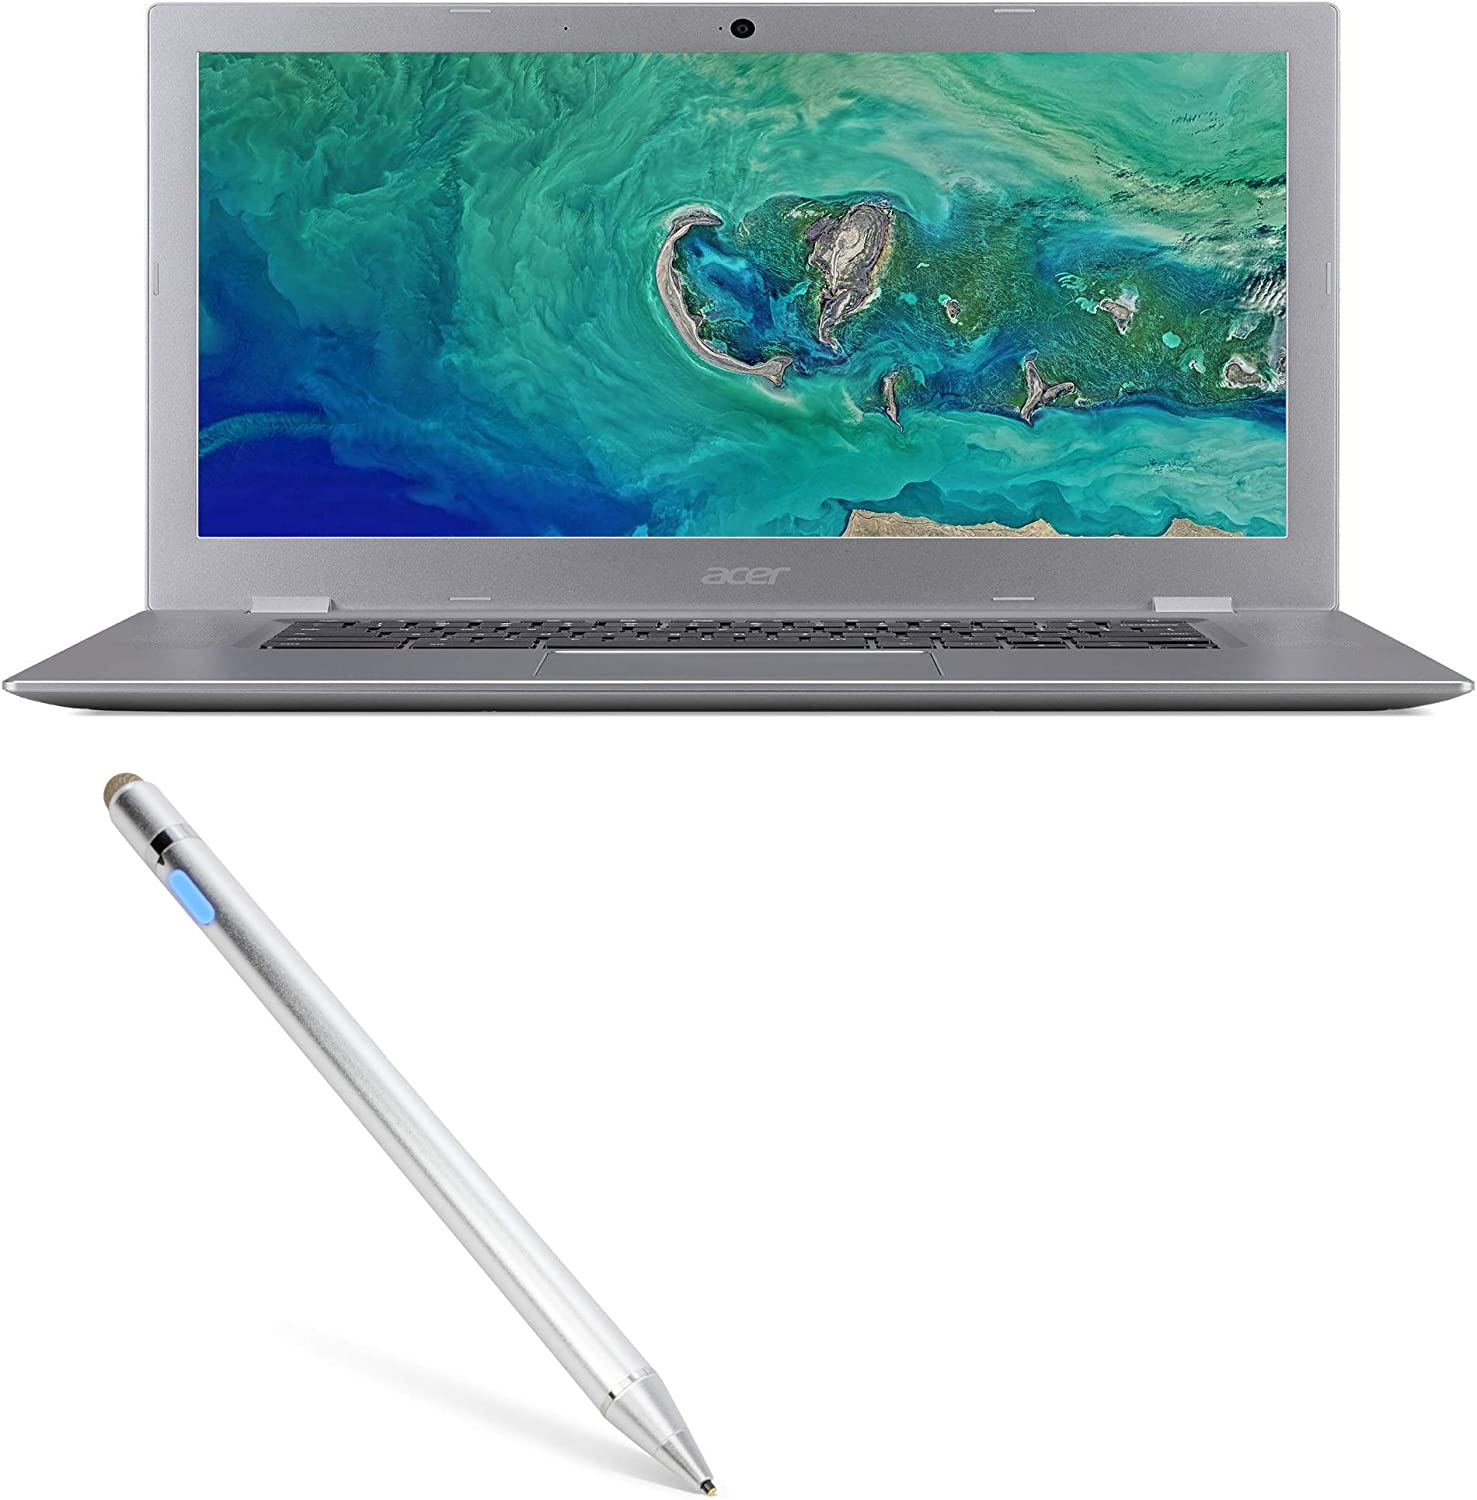 Broonel Red Fine Point Digital Active Stylus Pen Compatible with The Acer Chromebook 311 C721 11.6